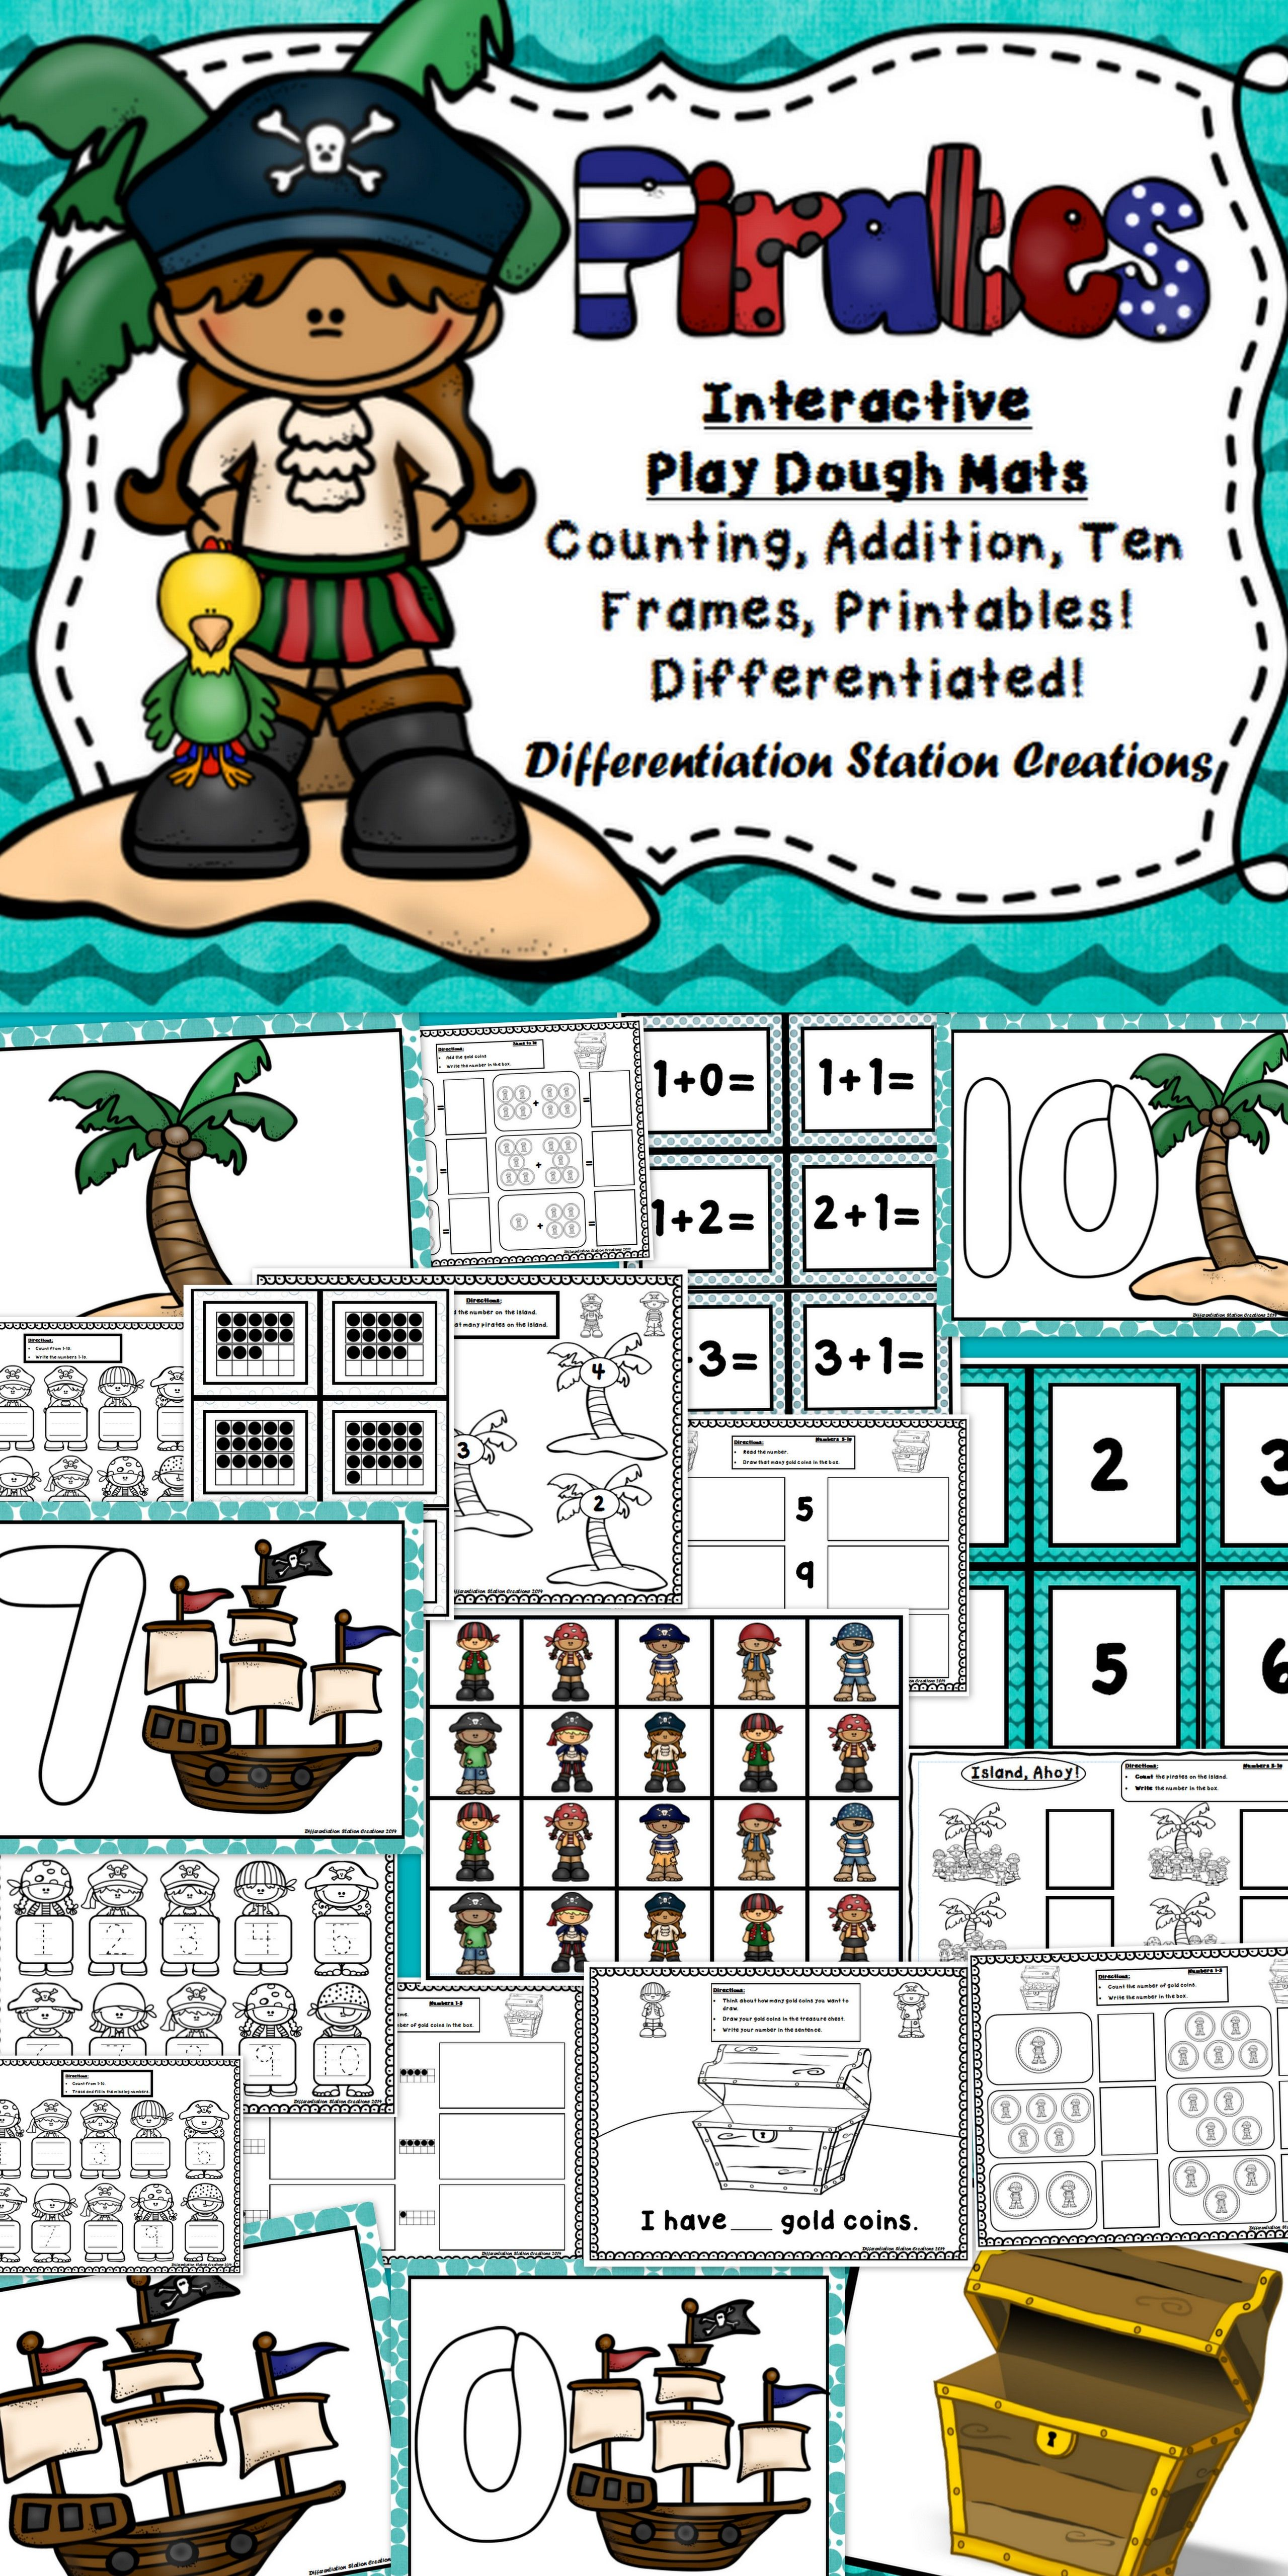 Pirates Interactive Play Dough Mats Counting Addition Ten Frames Centers Games And Printables Preschool Pirate Classroom Pirate Activities Pirate Day [ 5120 x 2560 Pixel ]